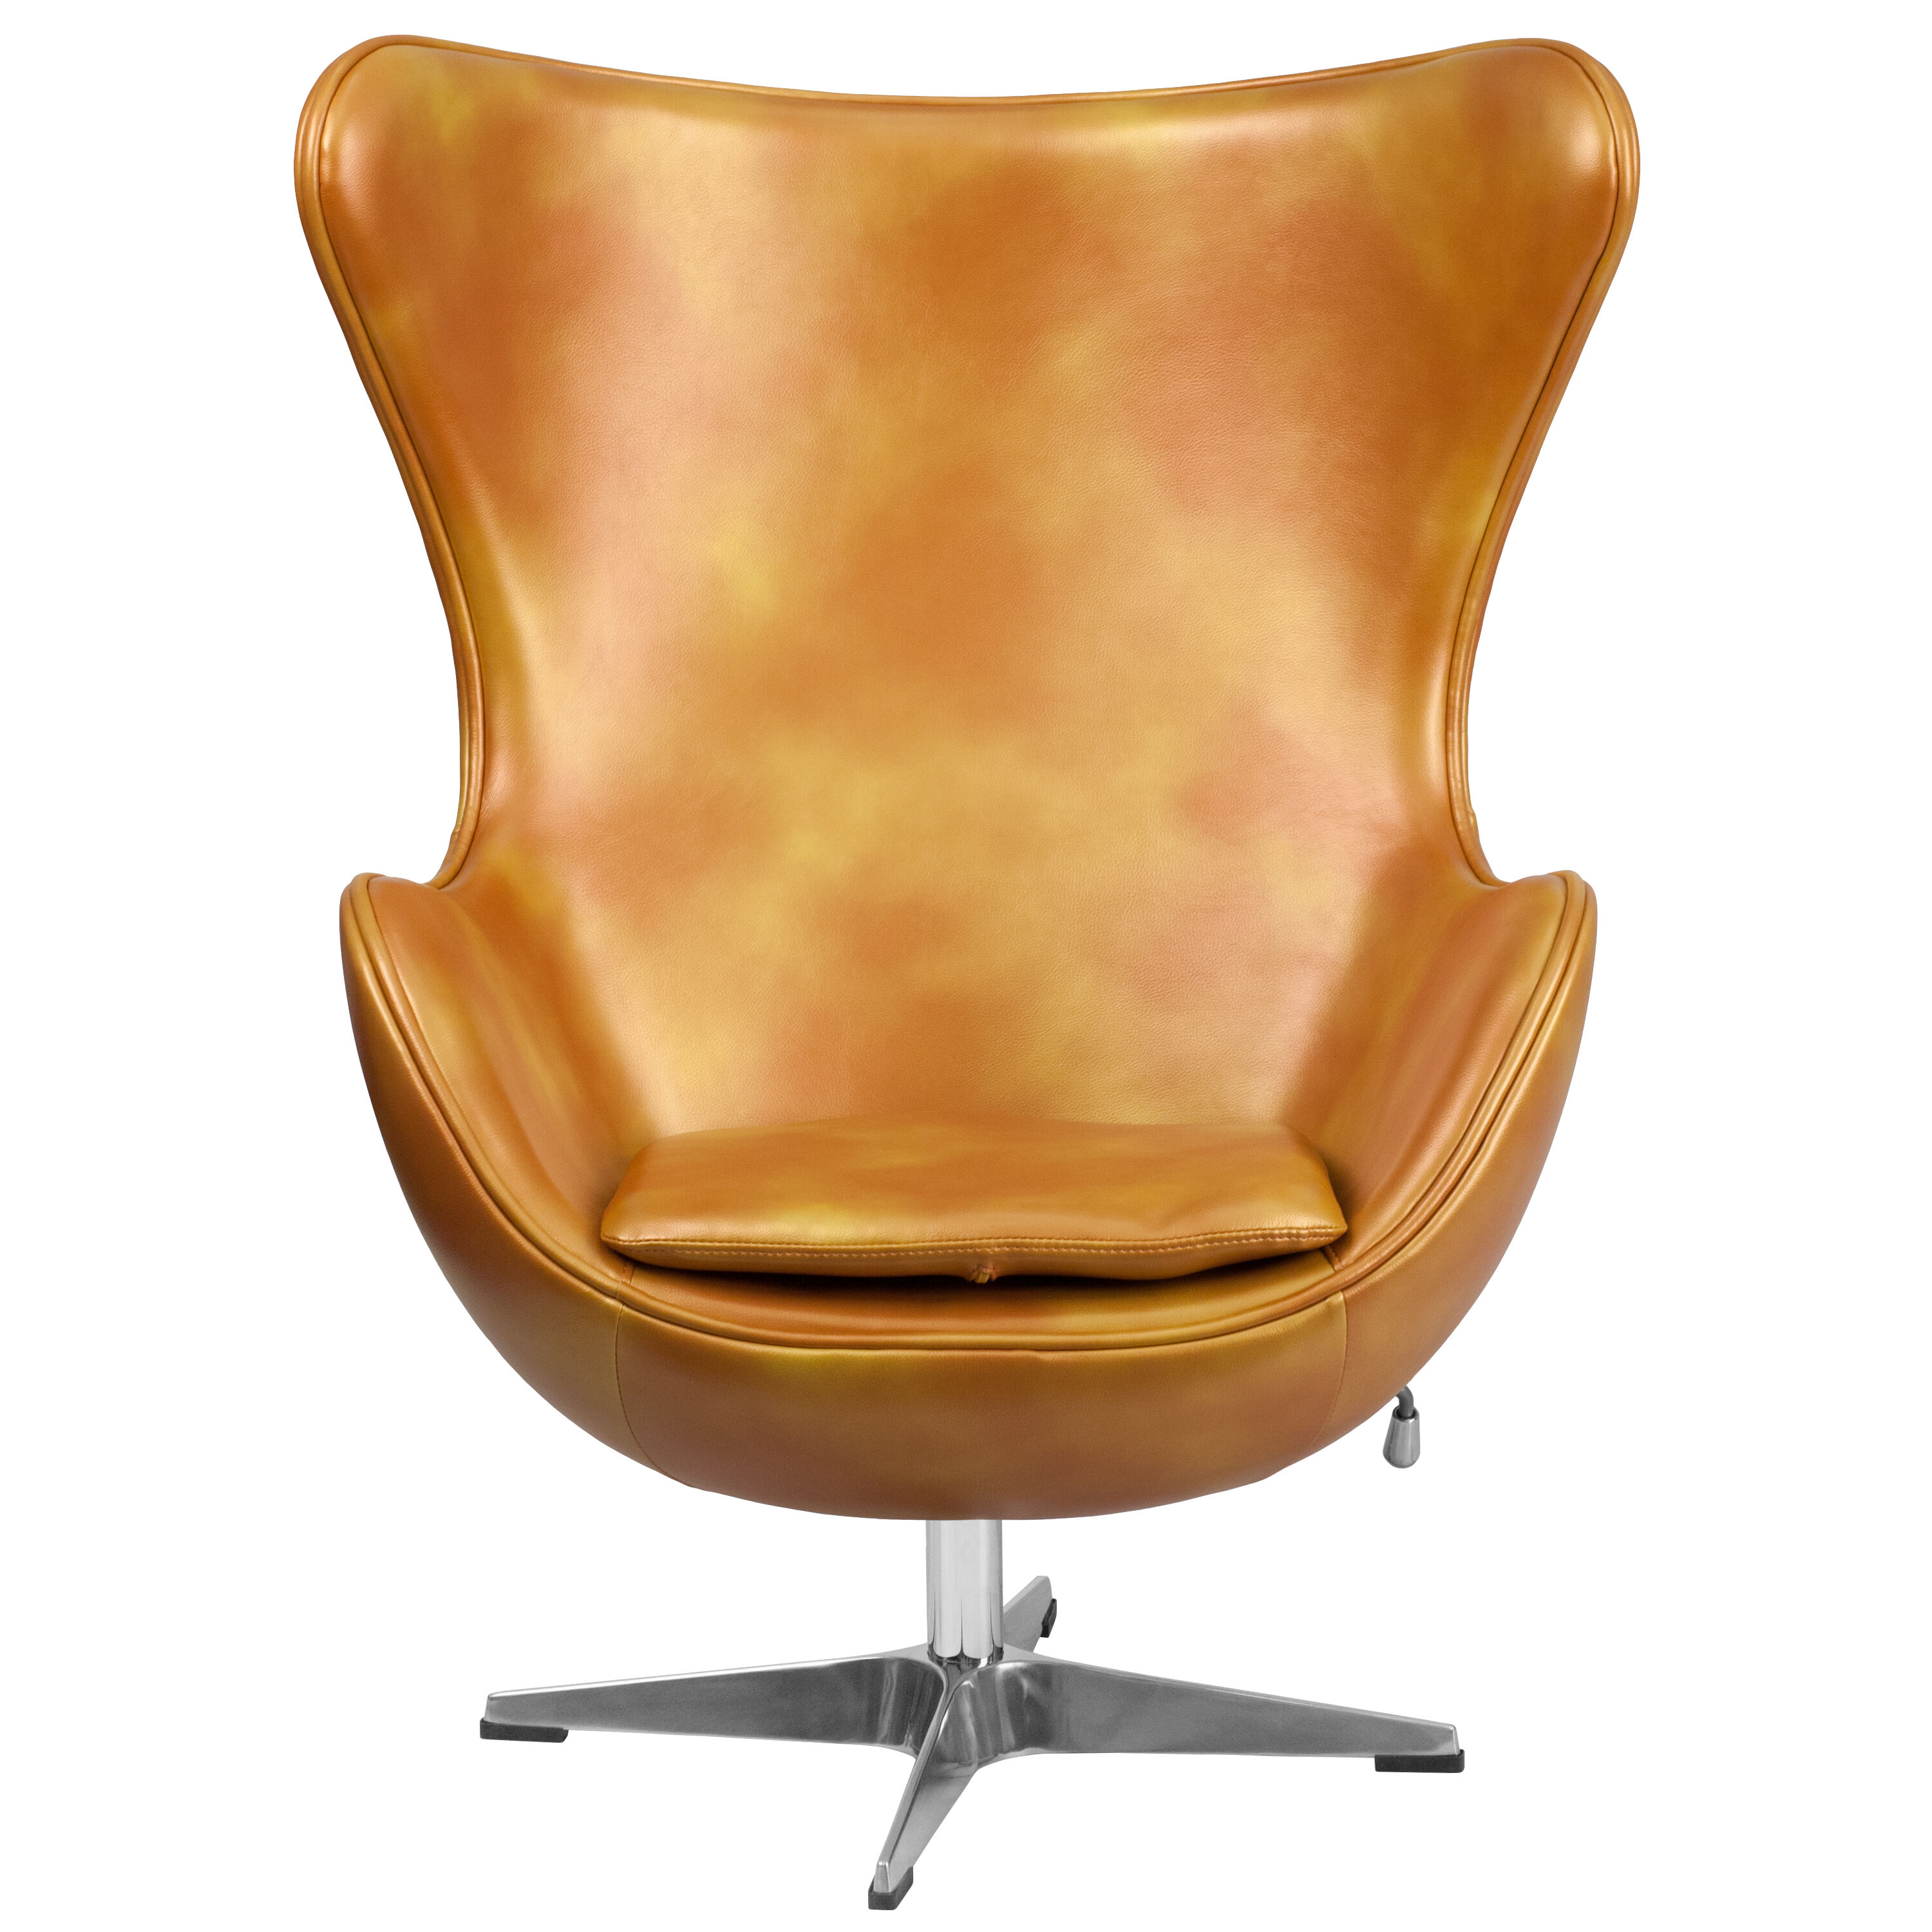 Our Gold Leather Egg Chair With Tilt Lock Mechanism Is On Sale Now.